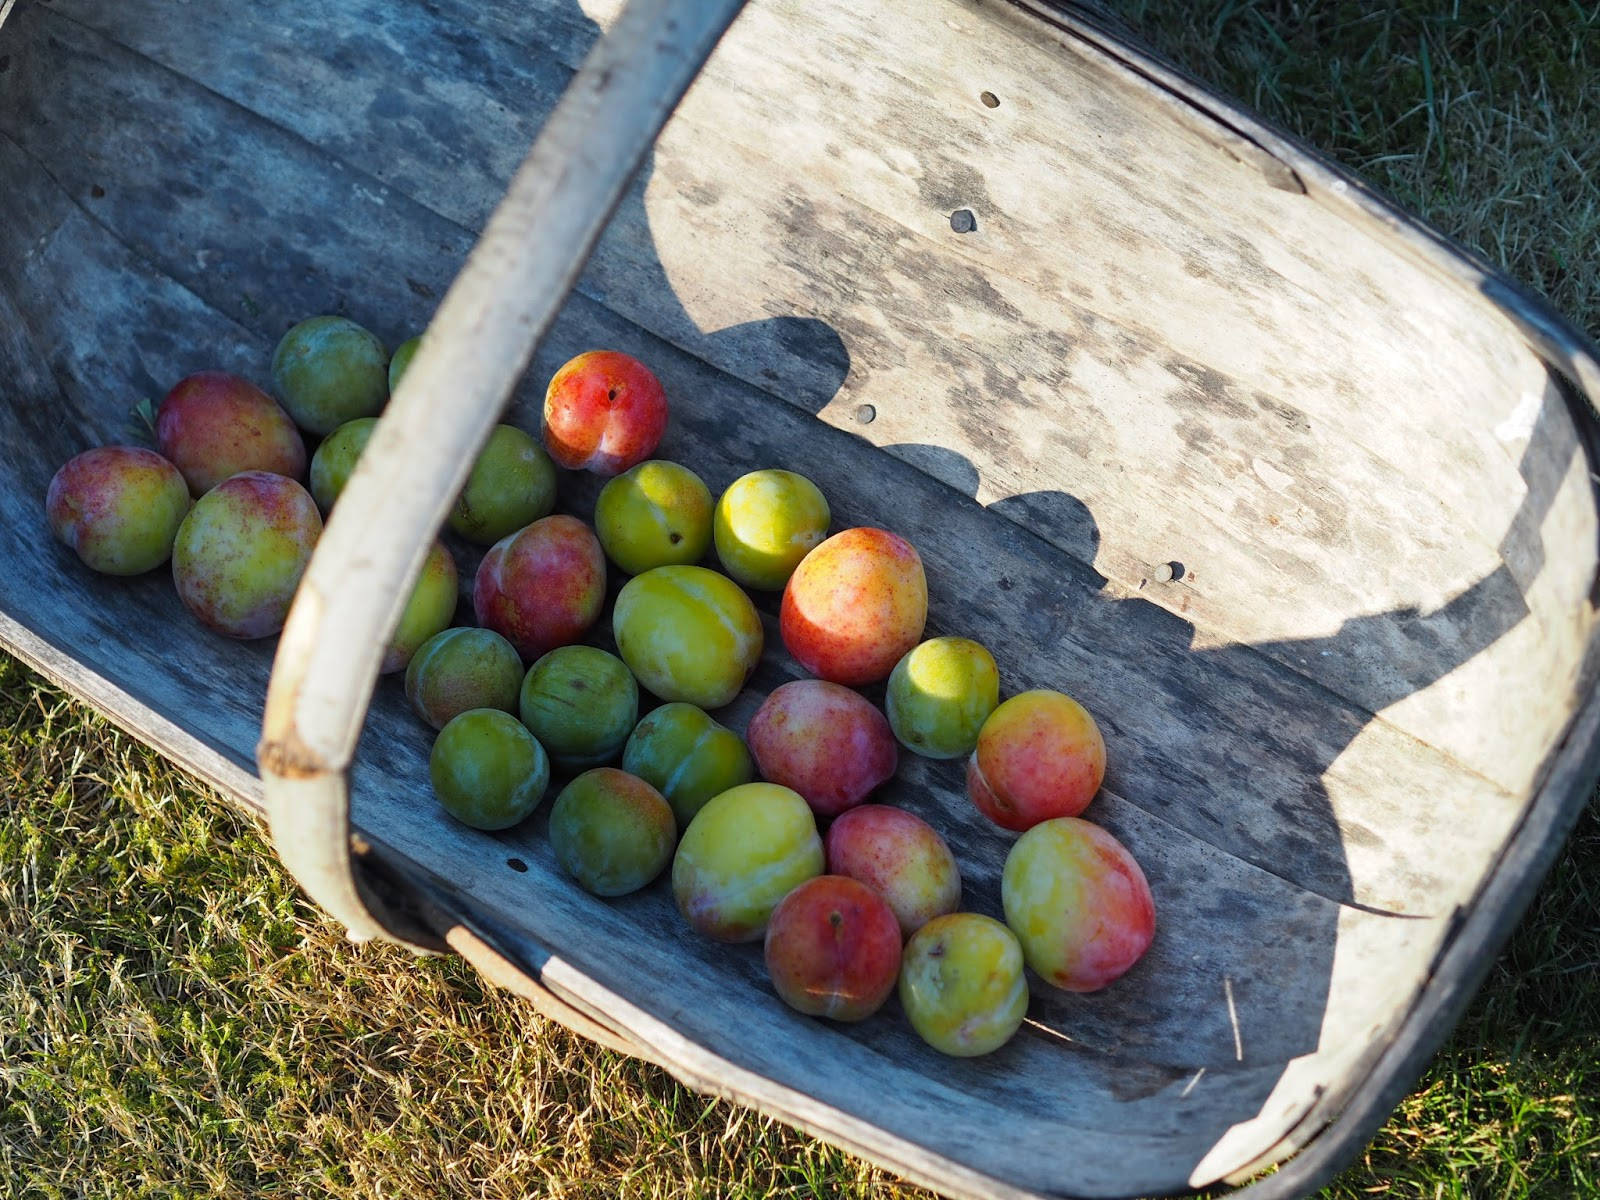 Basket of picked Plums